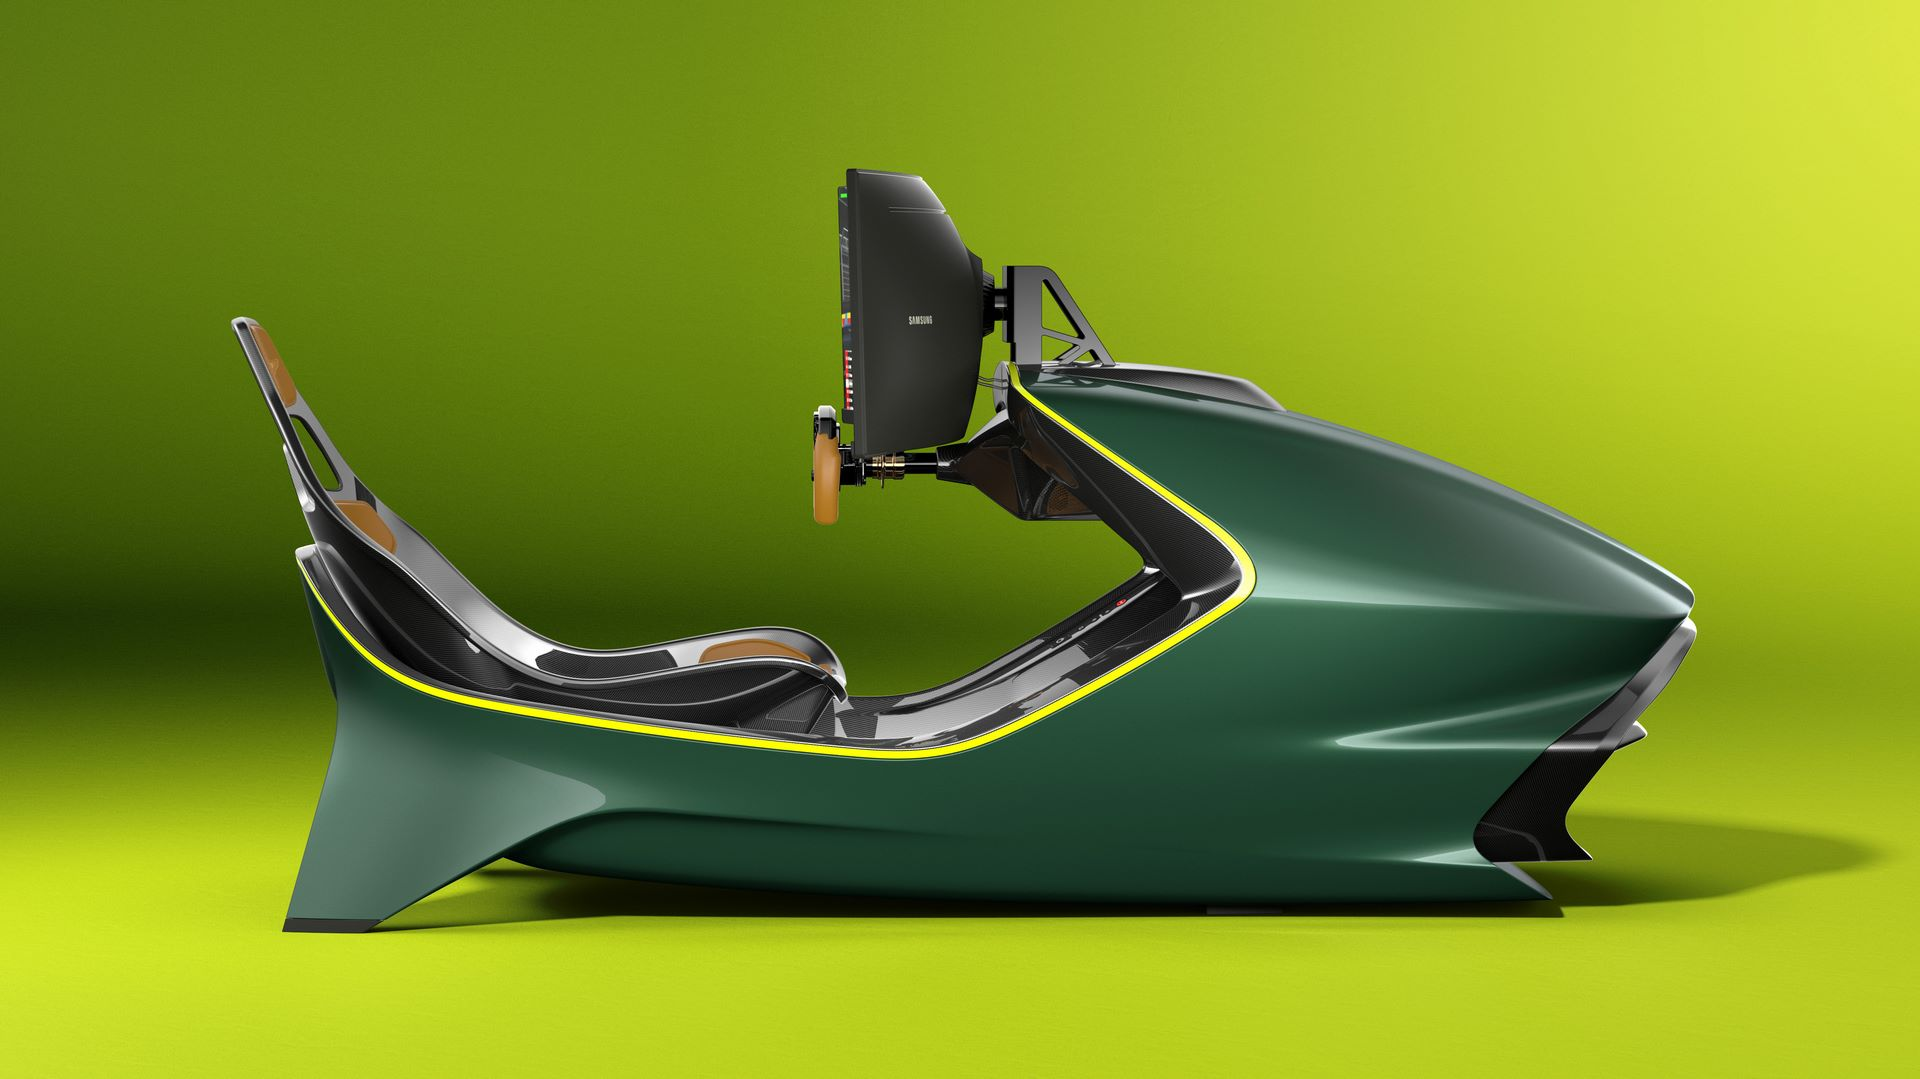 Aston-Martin-AMR-C01-racing-simulator-4